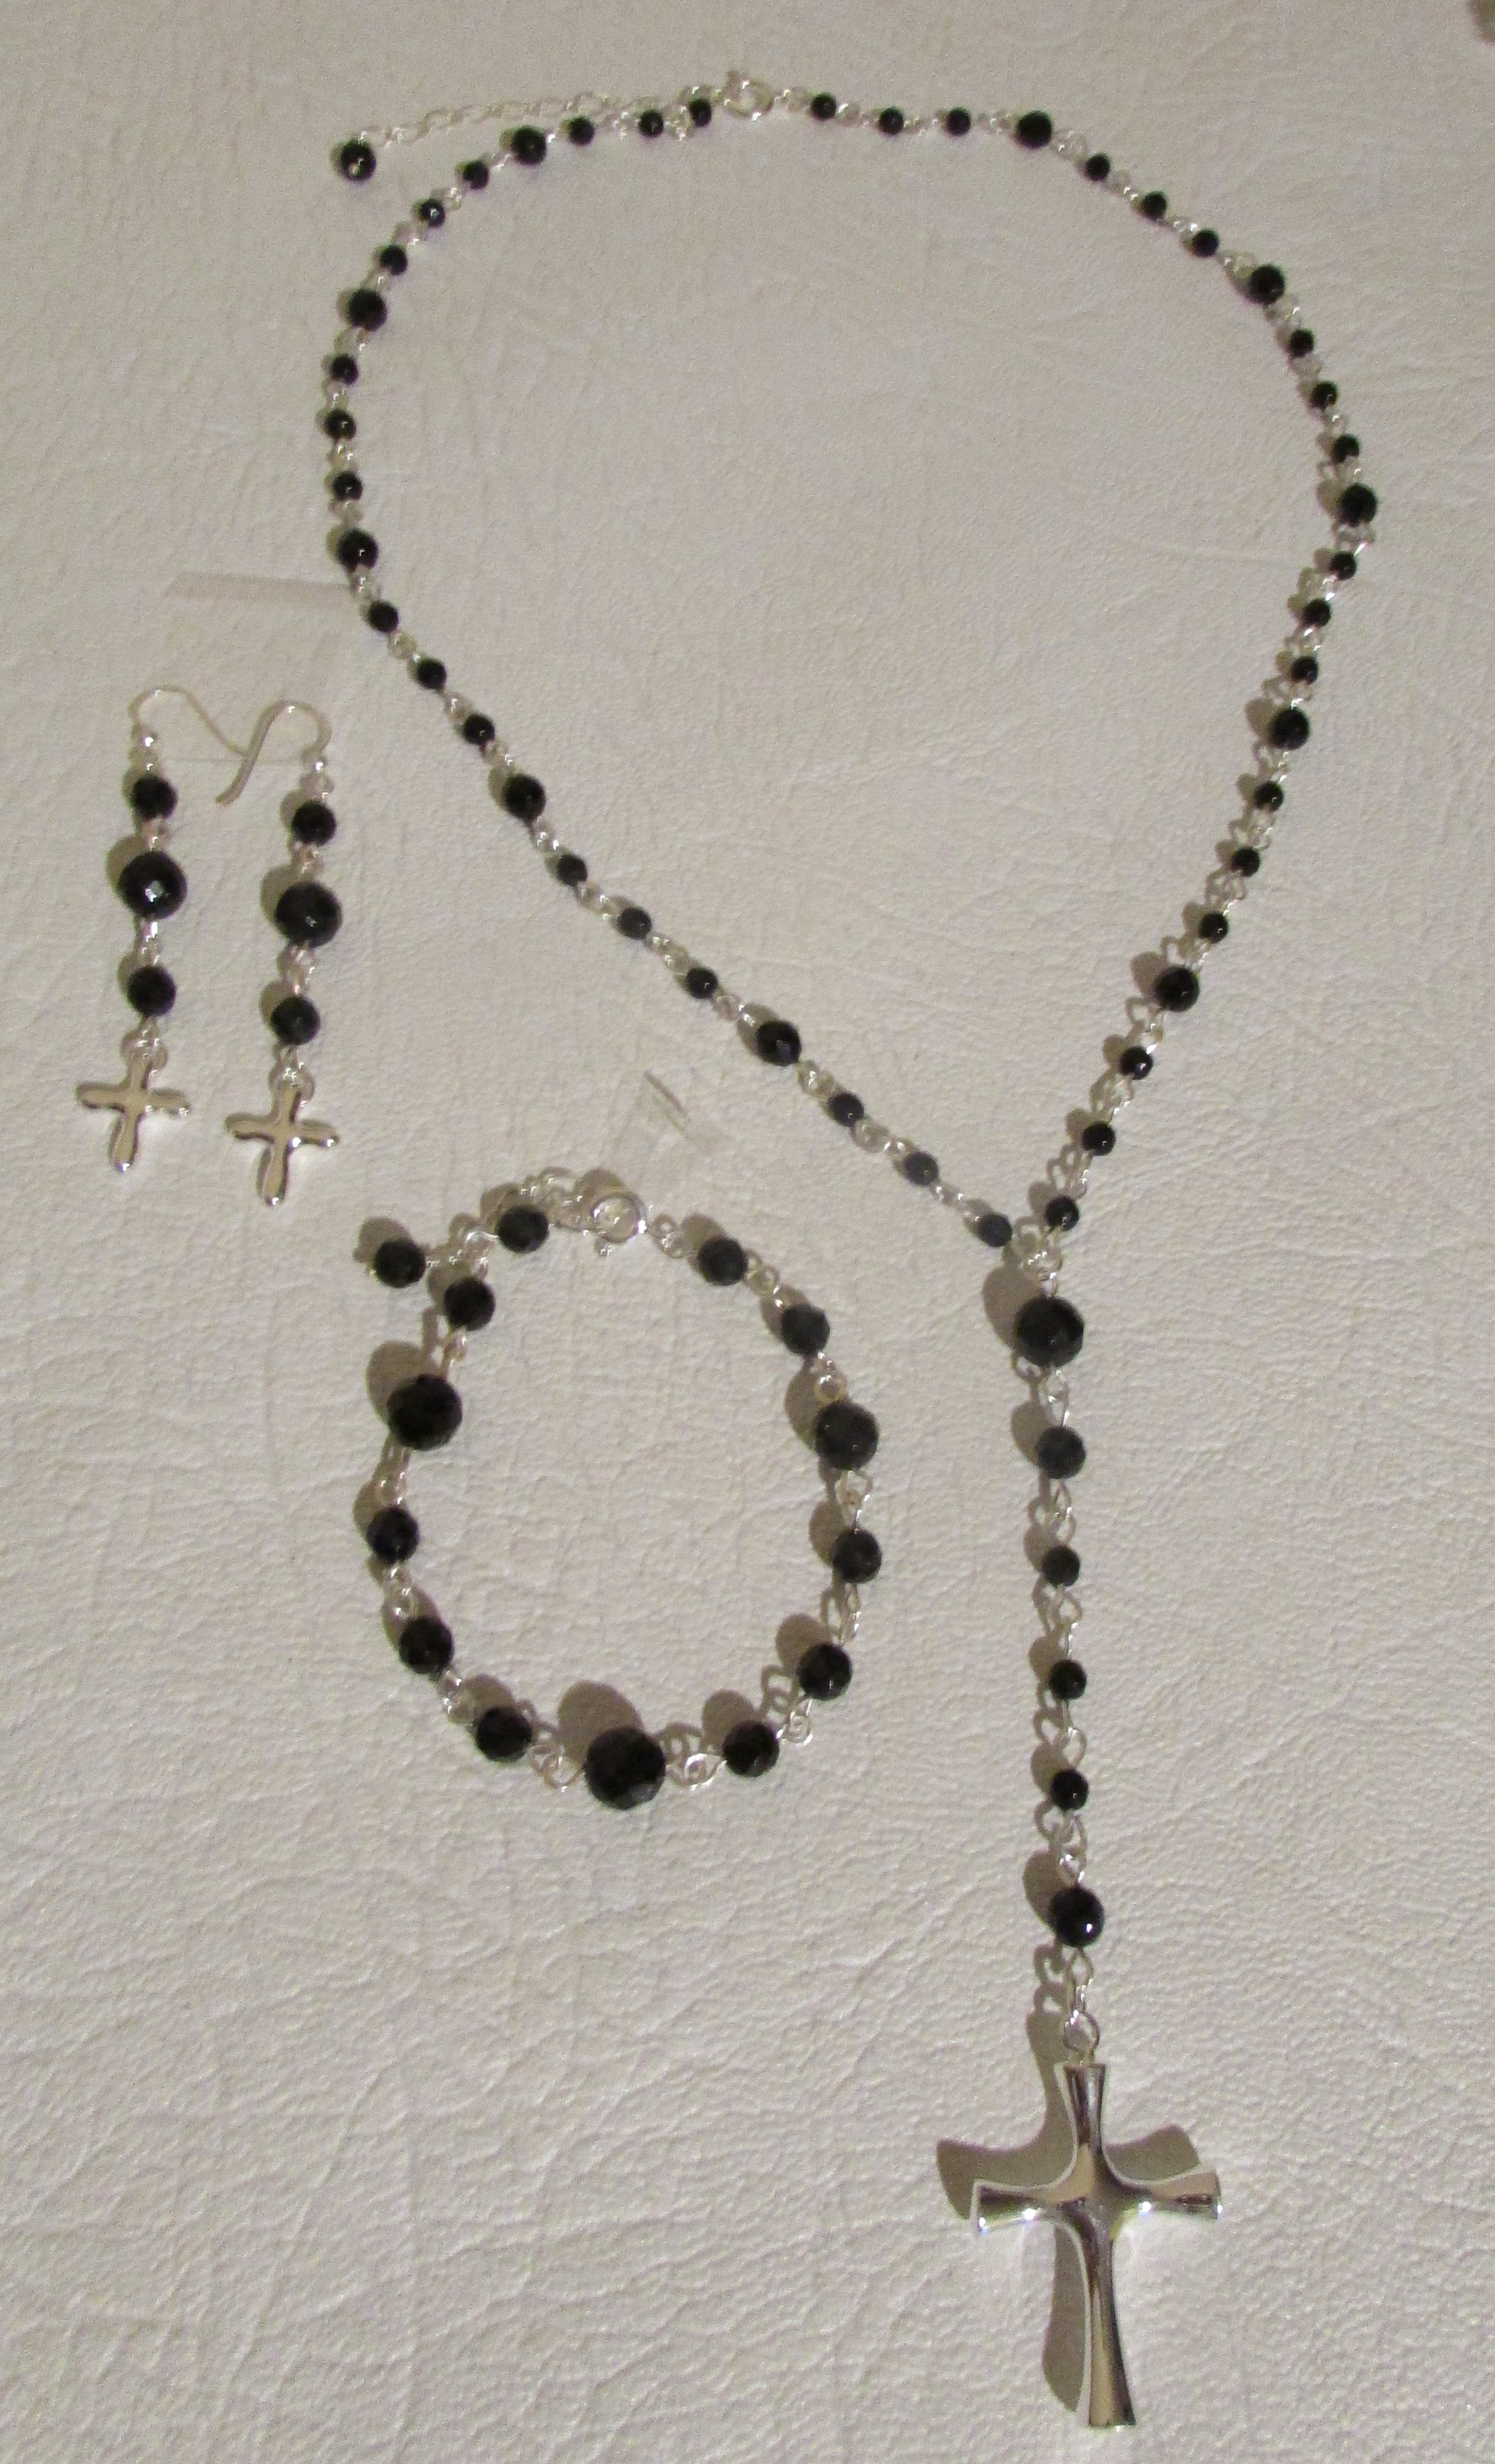 BLACK Onyx & Sterling Silver 925 Cross Pendant Lariat Necklace, Bracelet & Earrings Set